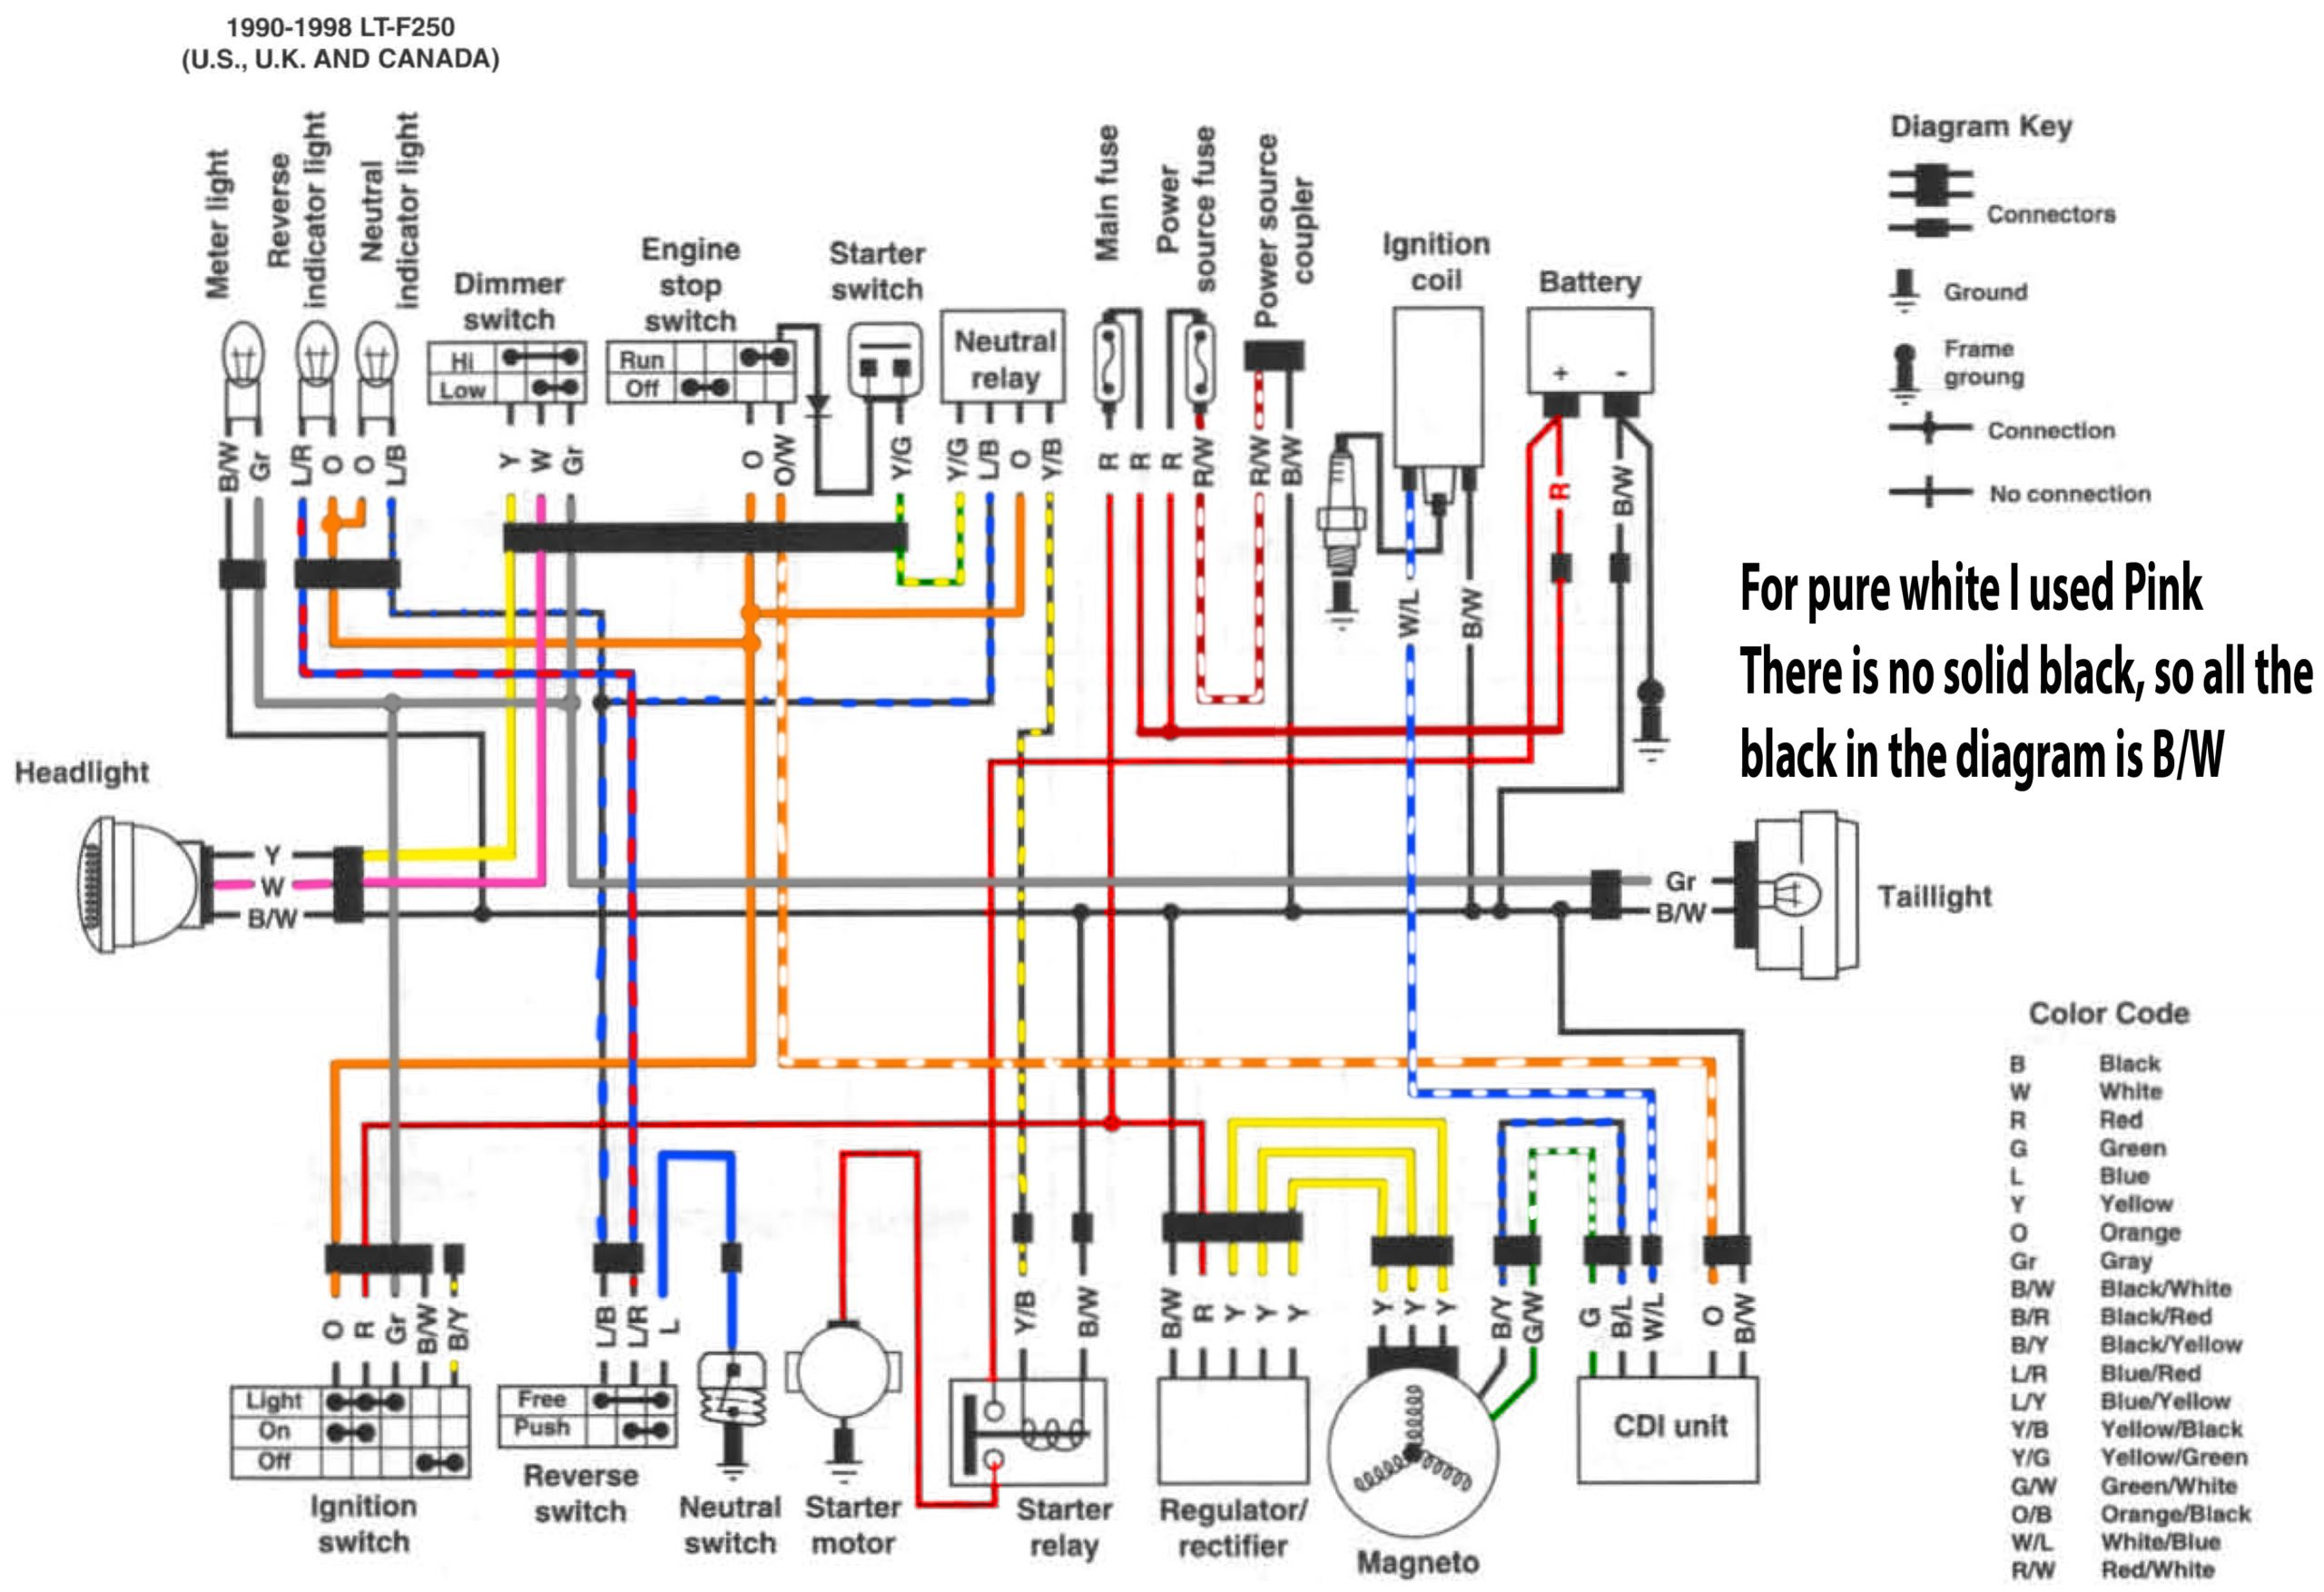 1998 Yamaha Grizzly 600 Wiring Diagram 02 Grizzly Cdi Box Wiring Diagram Liar Fuse8 Klictravel Nl